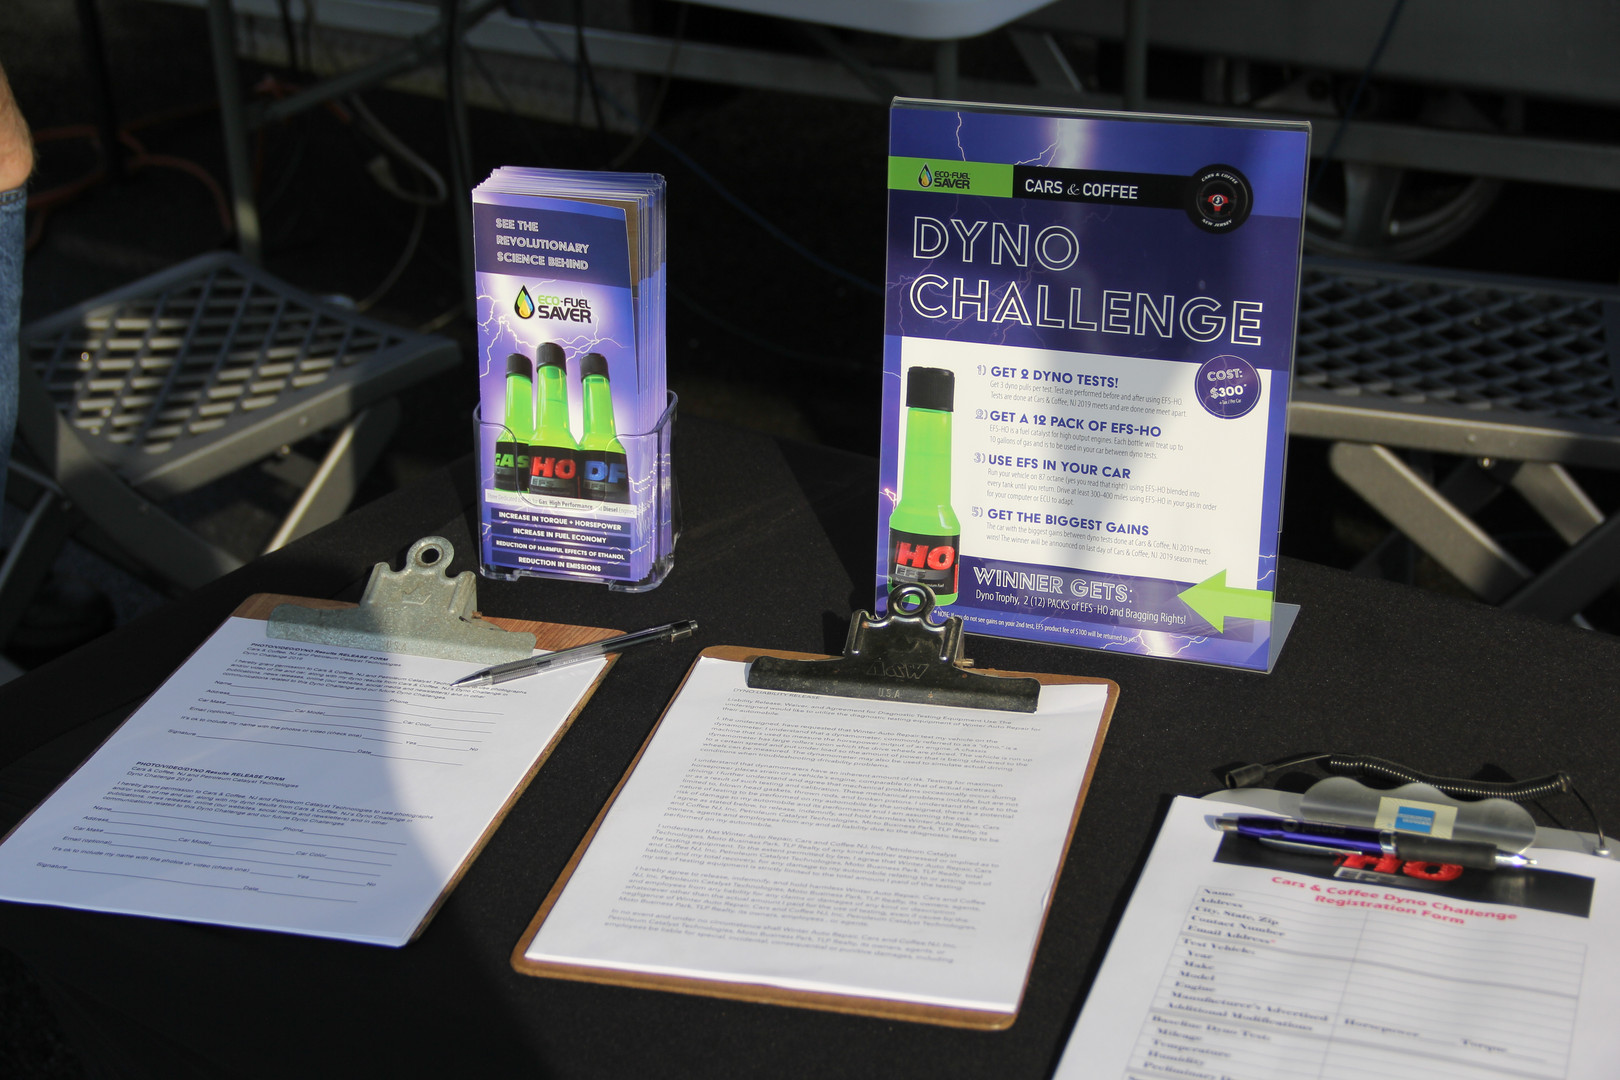 PCT Dyno Challenge table sign and brochure